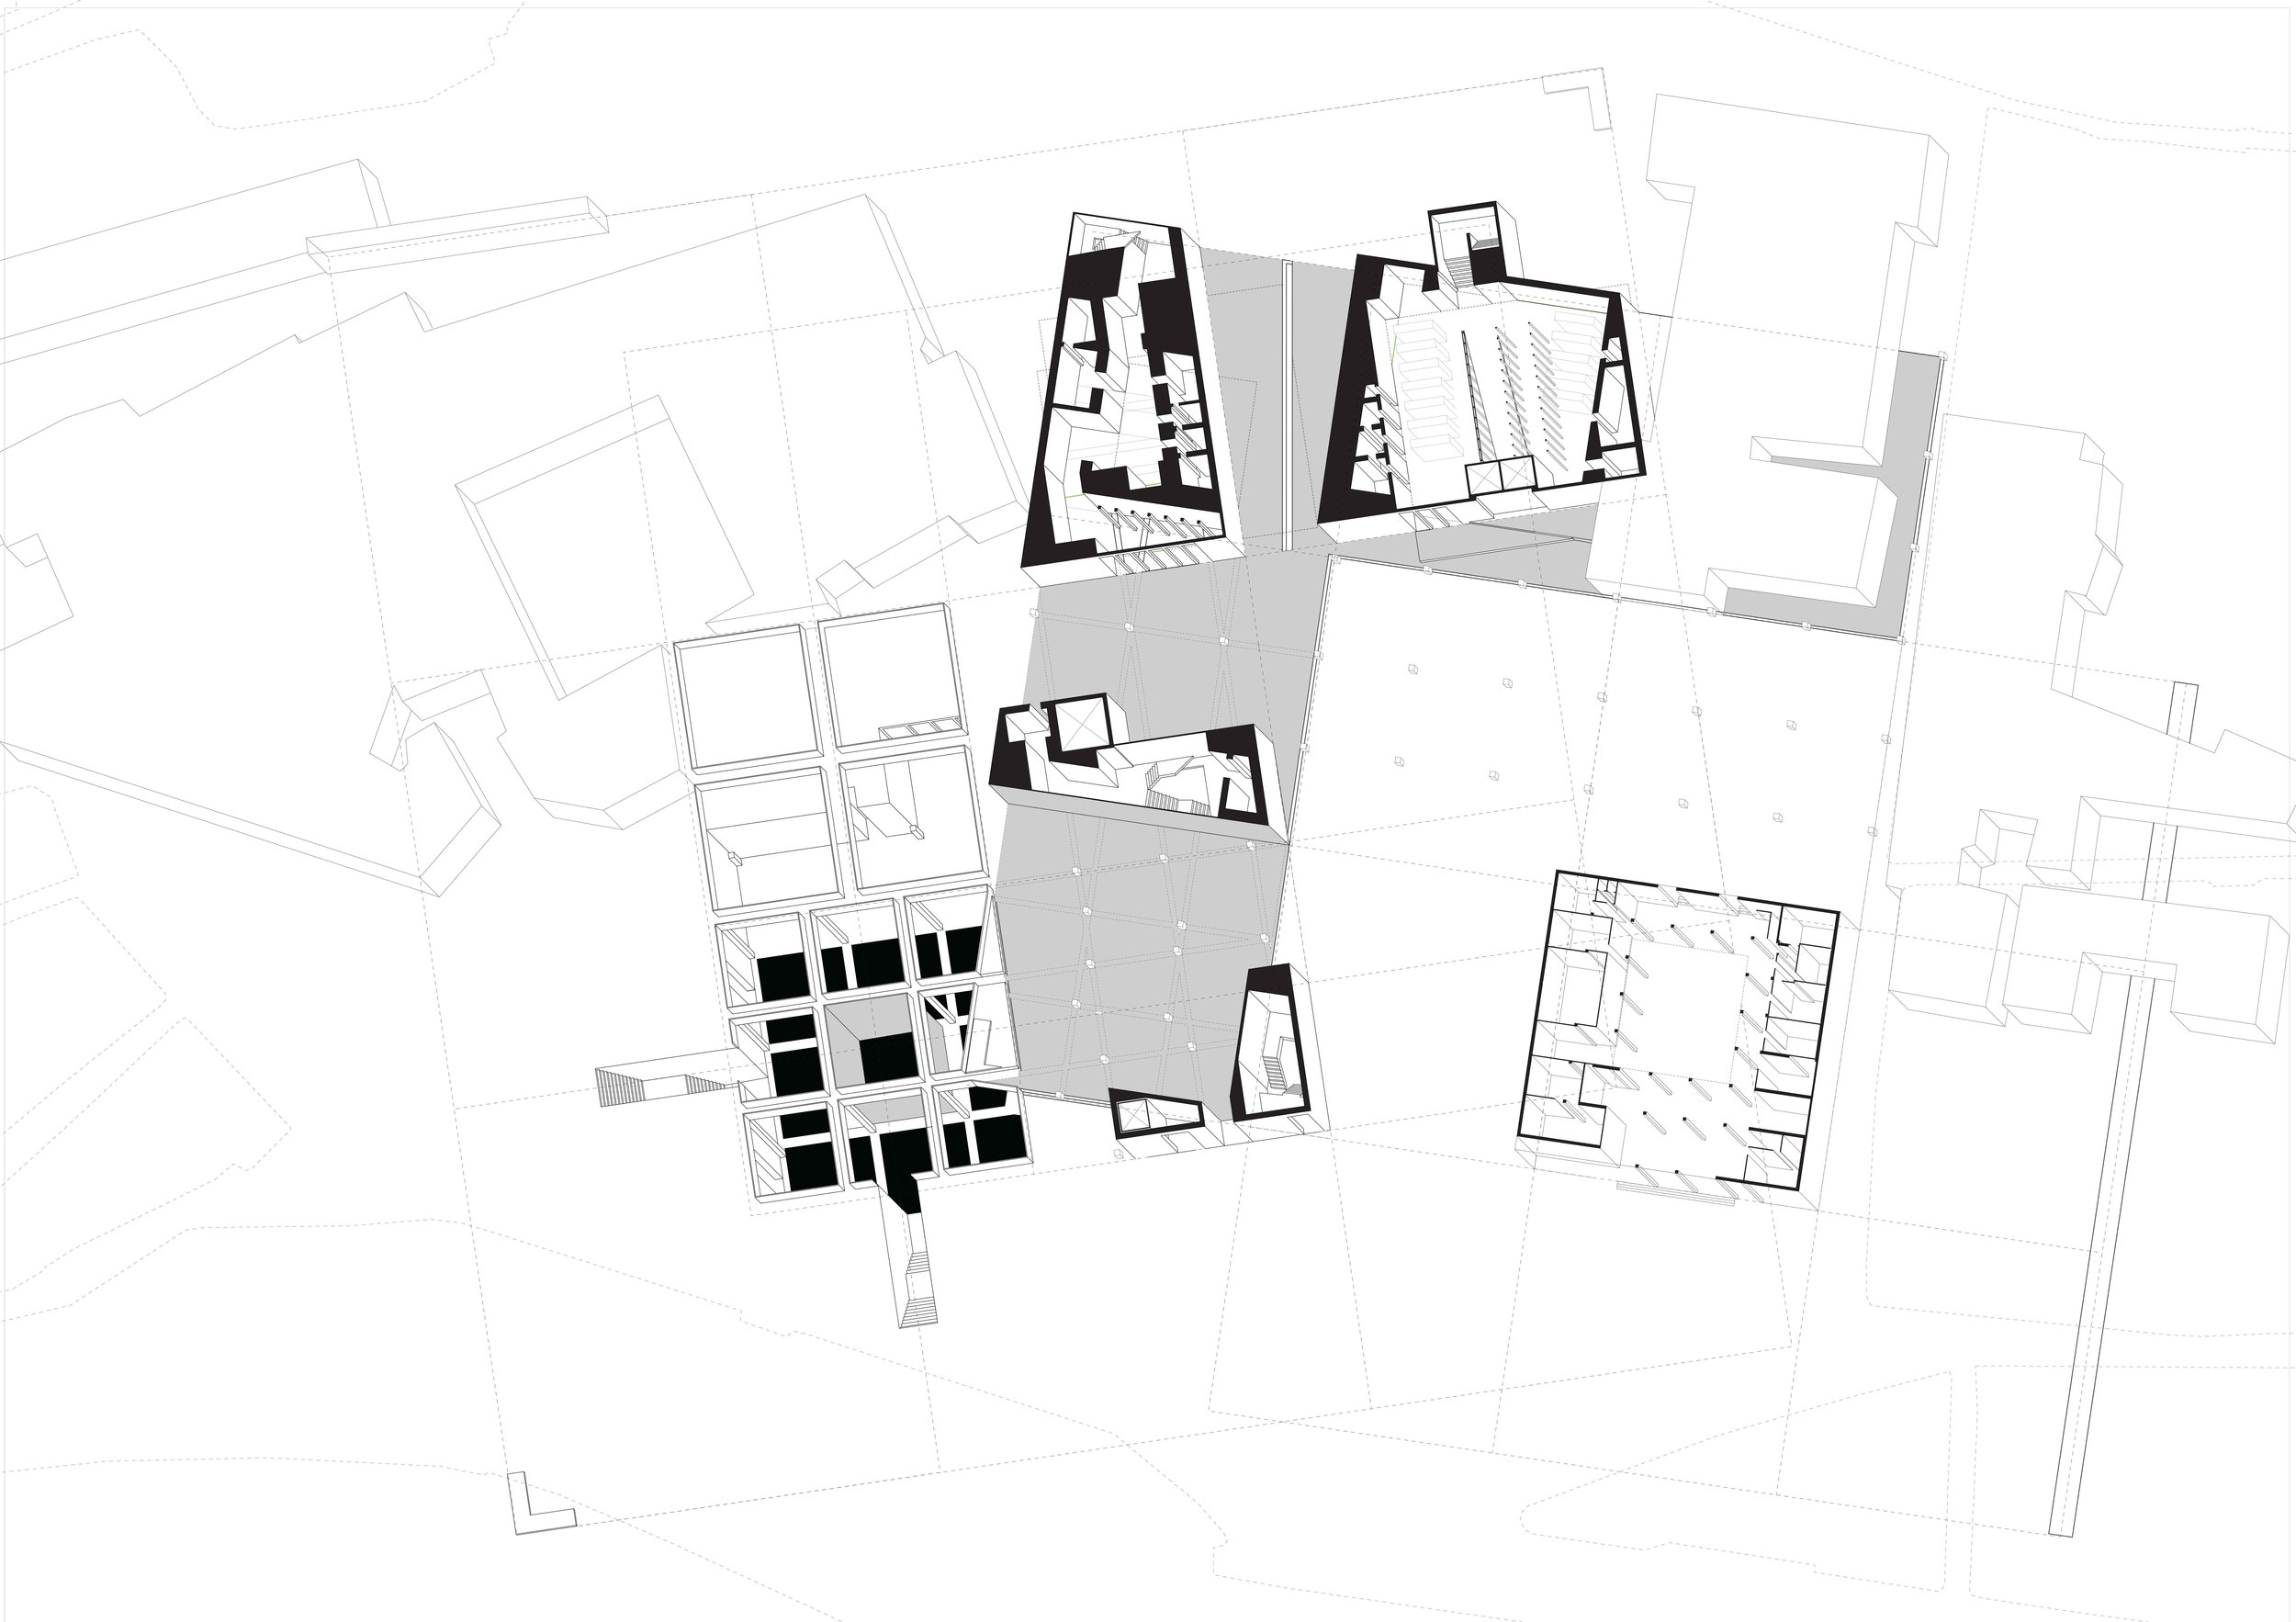 Ground Plan_Axo_01_lowres.jpg